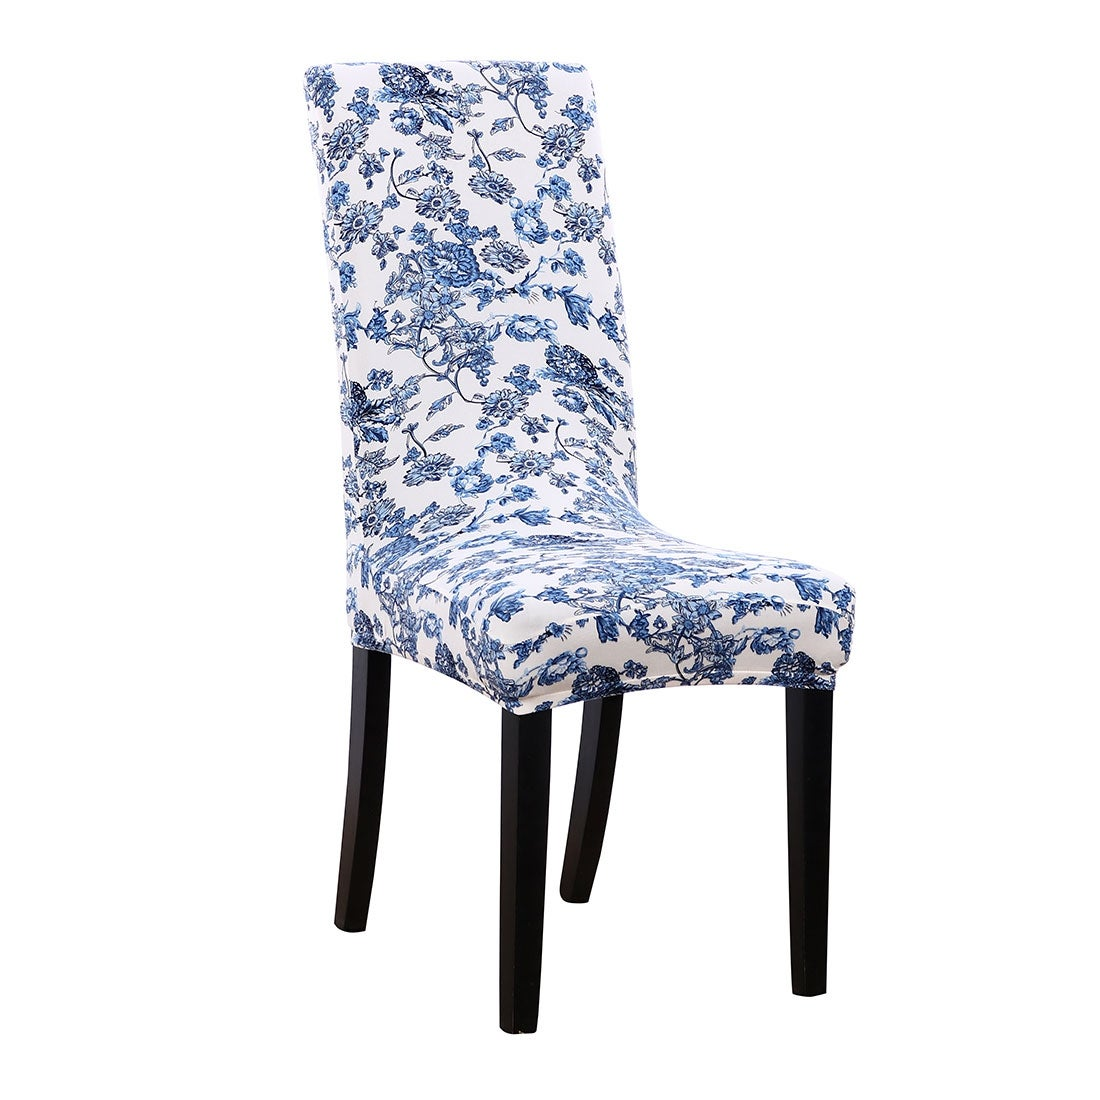 Shop Household Spandex Stretchy Dining Chair Seat Cover Protector White Blue Floral Pattern B Overstock 28962379